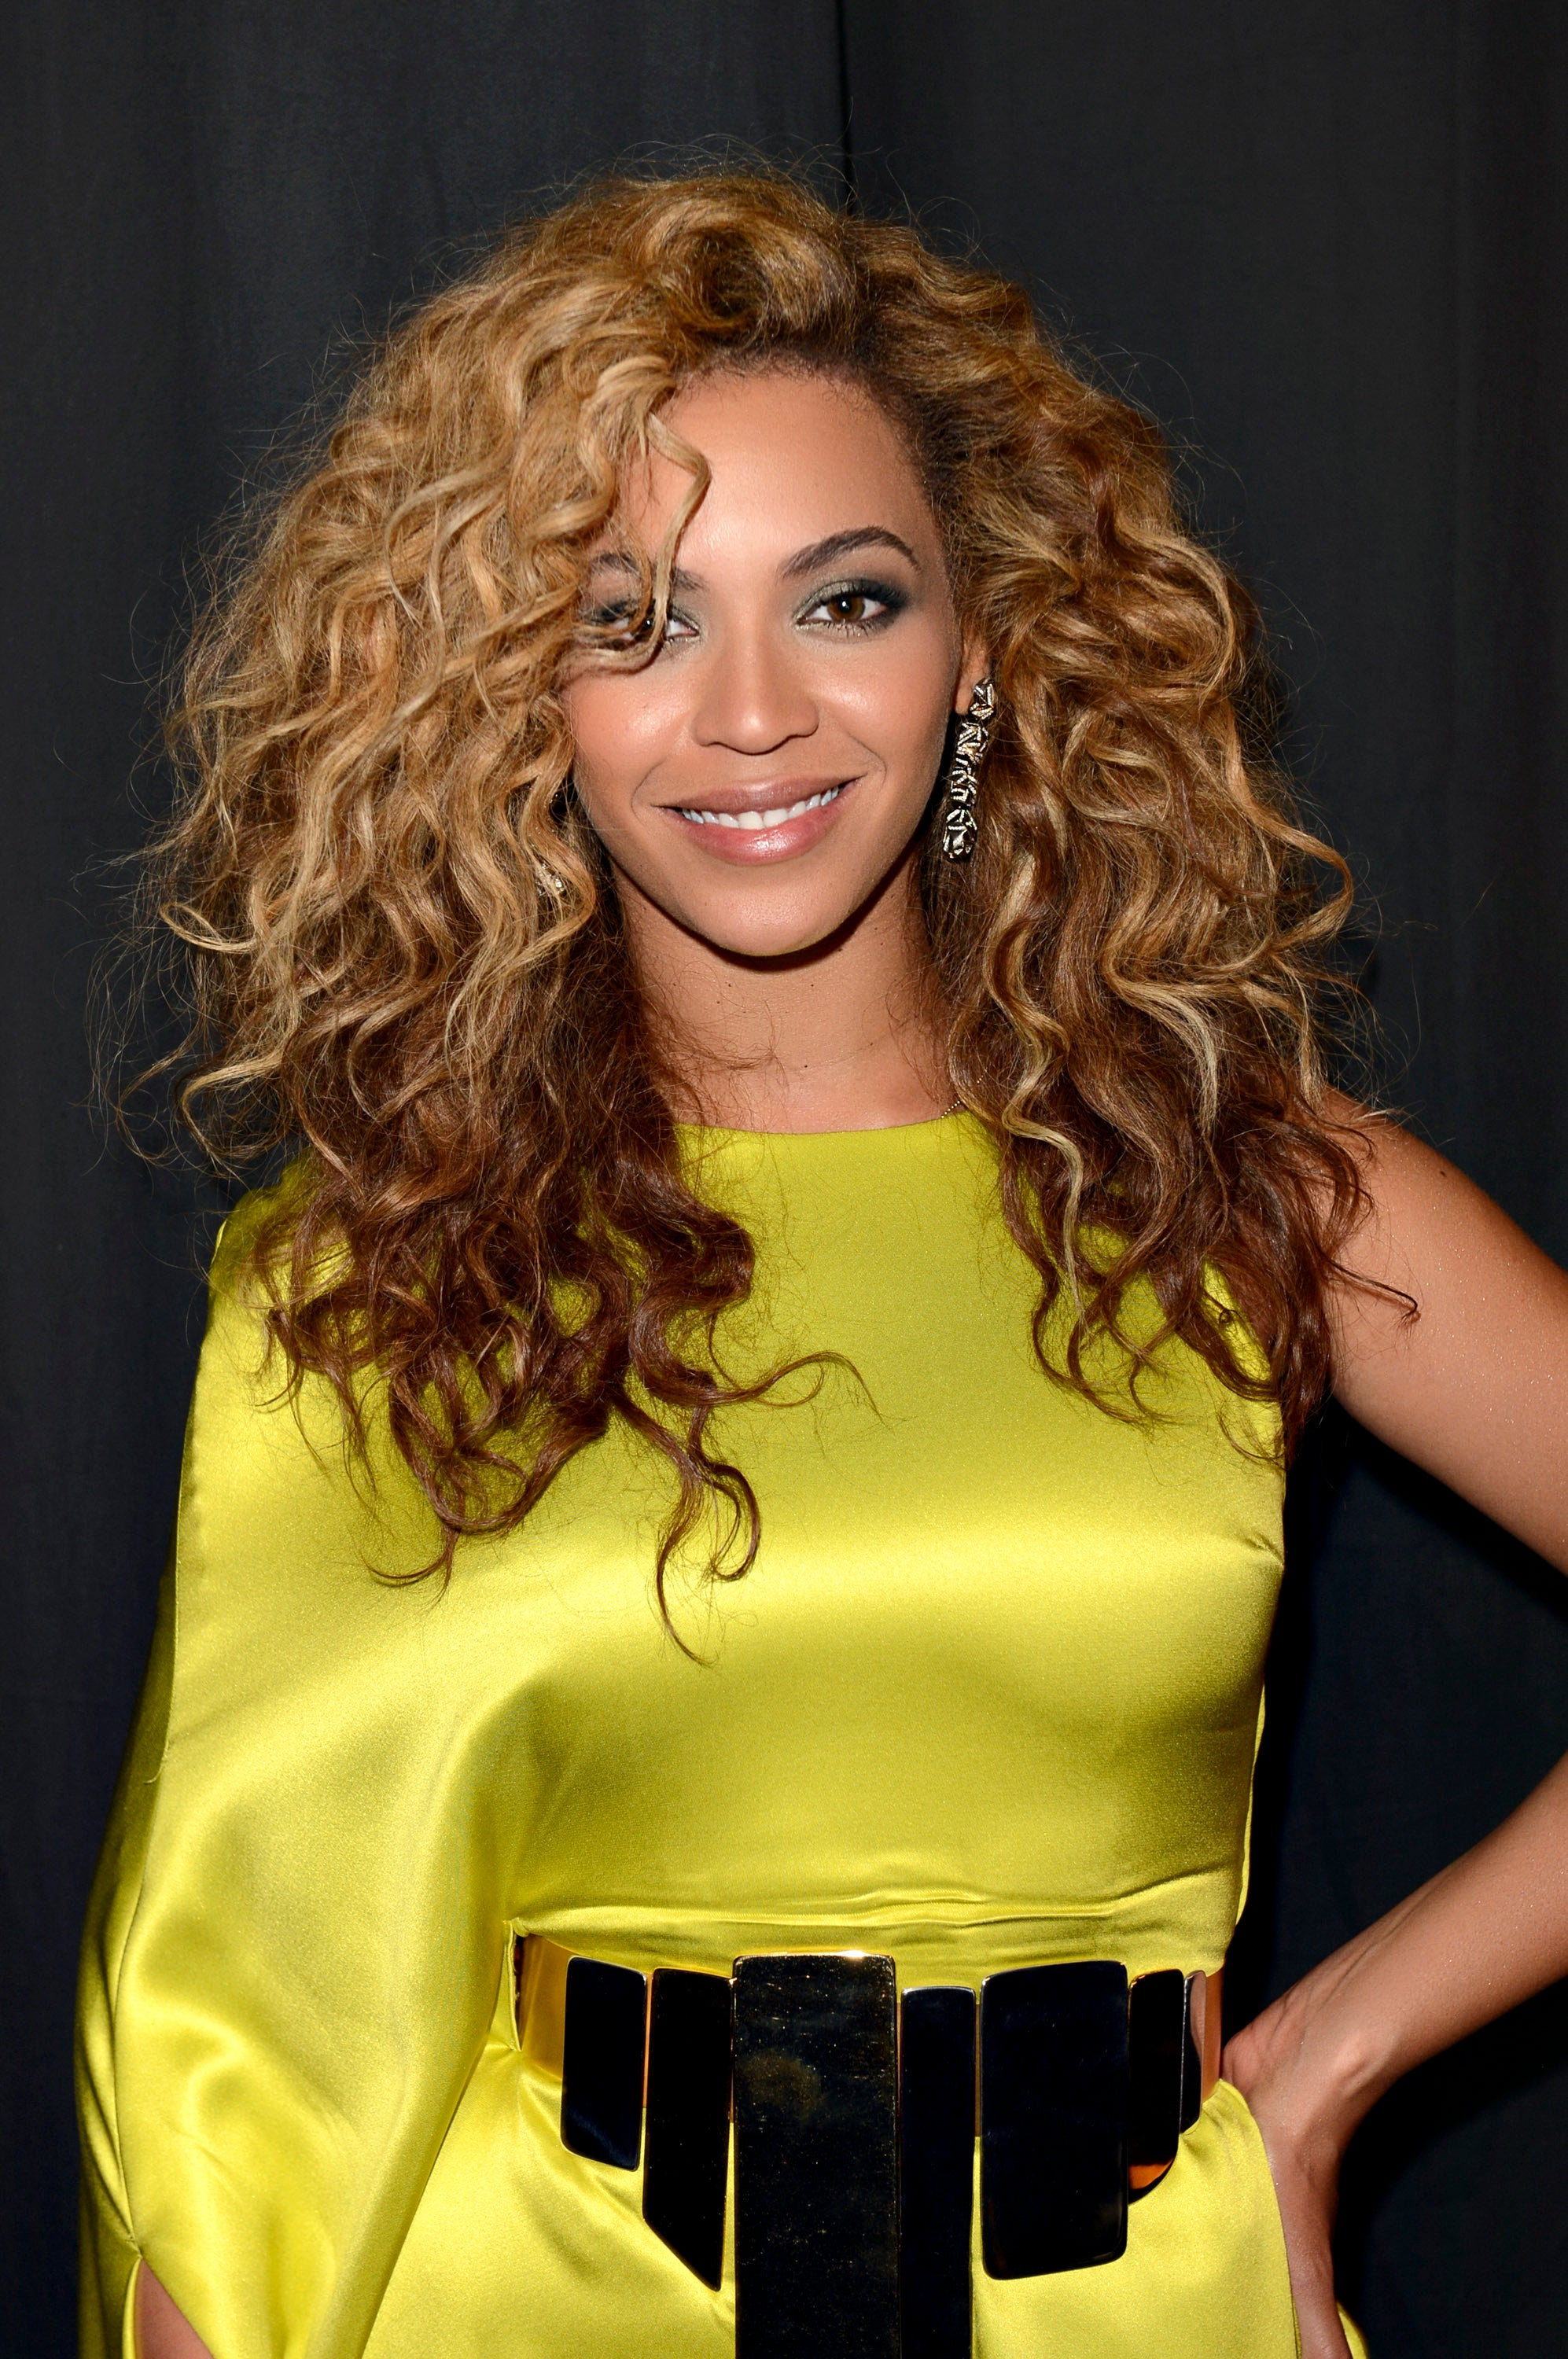 Beyoncé to Celebrate World Humanitarian Day with New Video